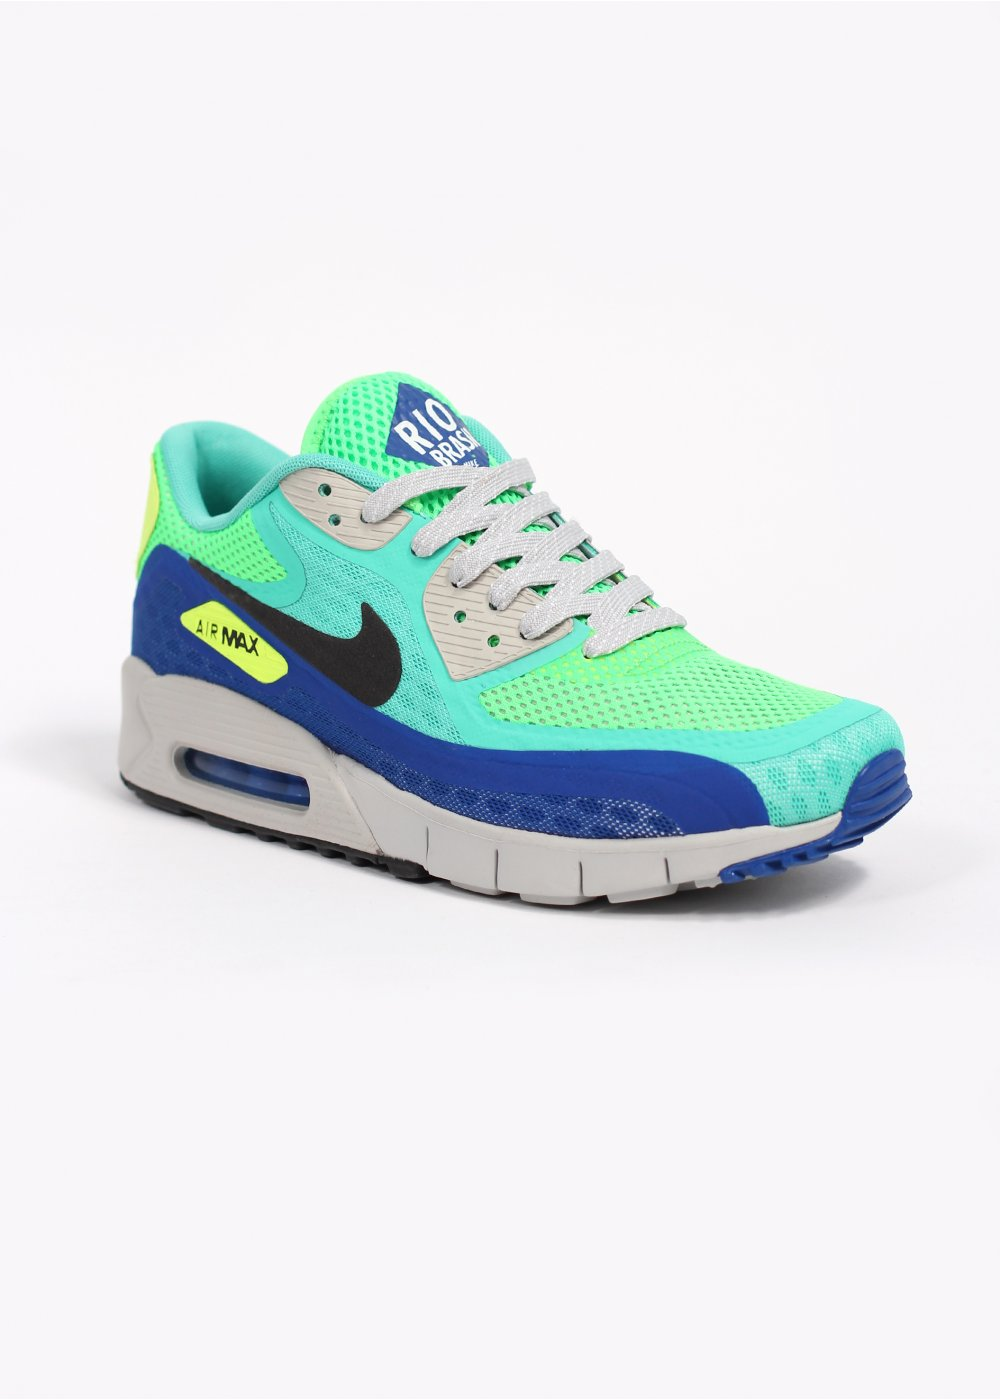 Nike Quickstrike Air Max 90 Breathe City Series \u0026#39;Rio\u0026#39; QS Trainers - Crystal Mint / Black / Hyper Cobalt